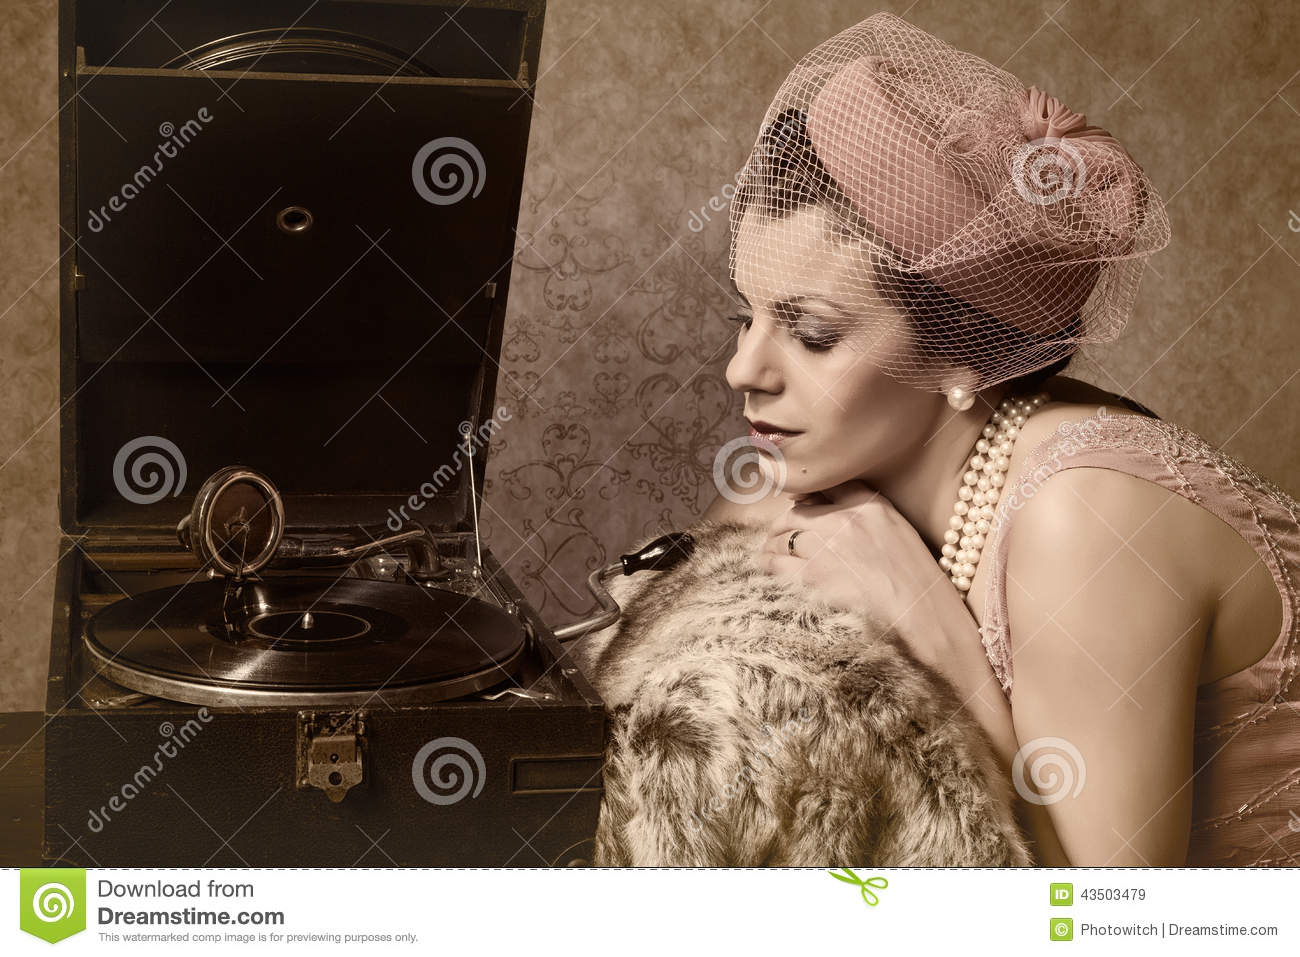 Vintage woman and old music